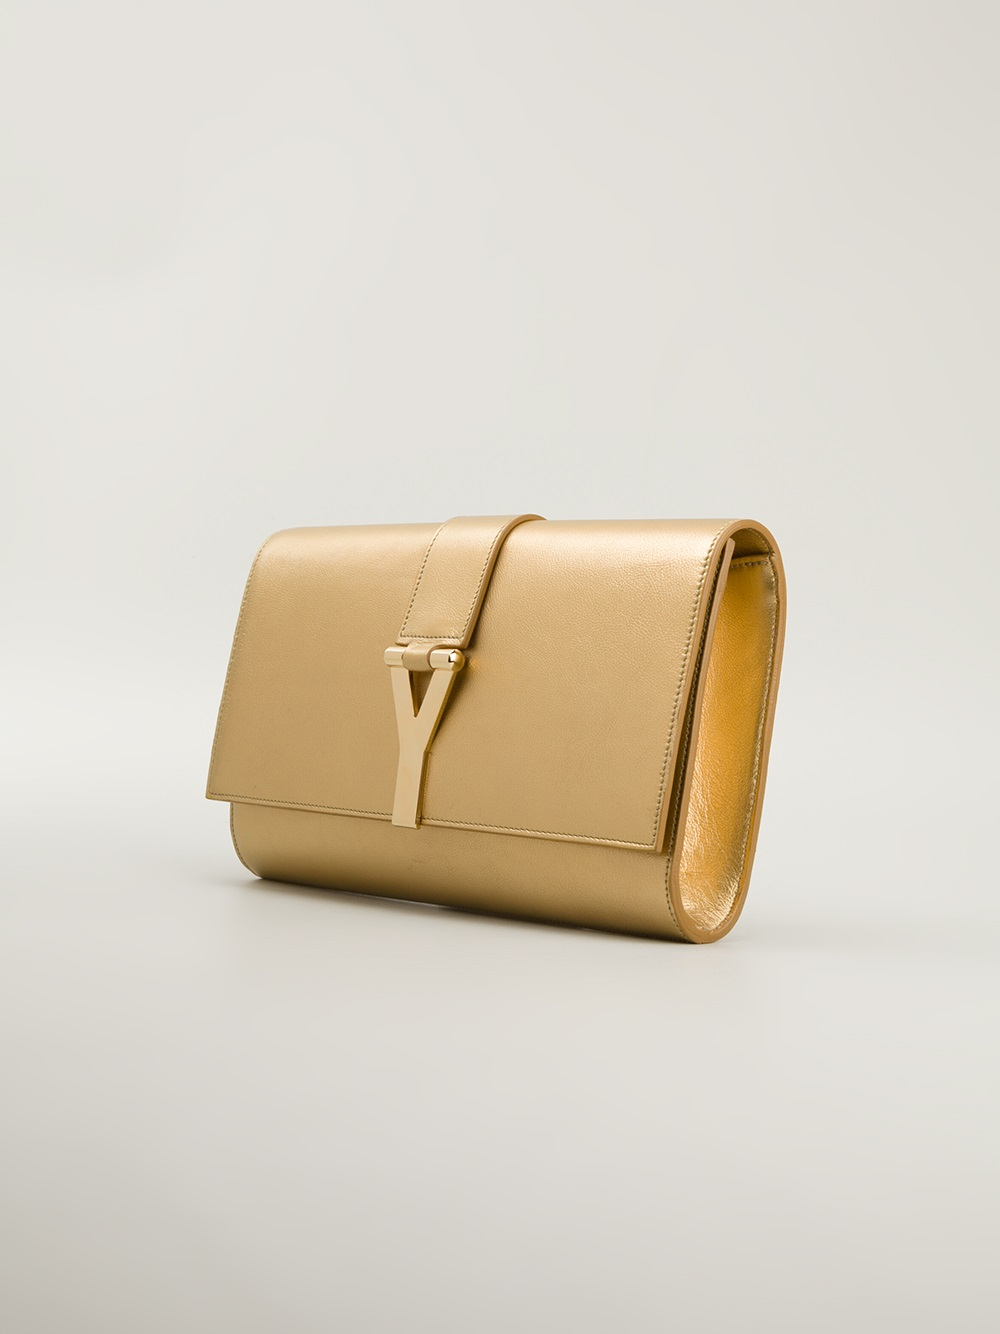 yves saint laurent chyc clutch